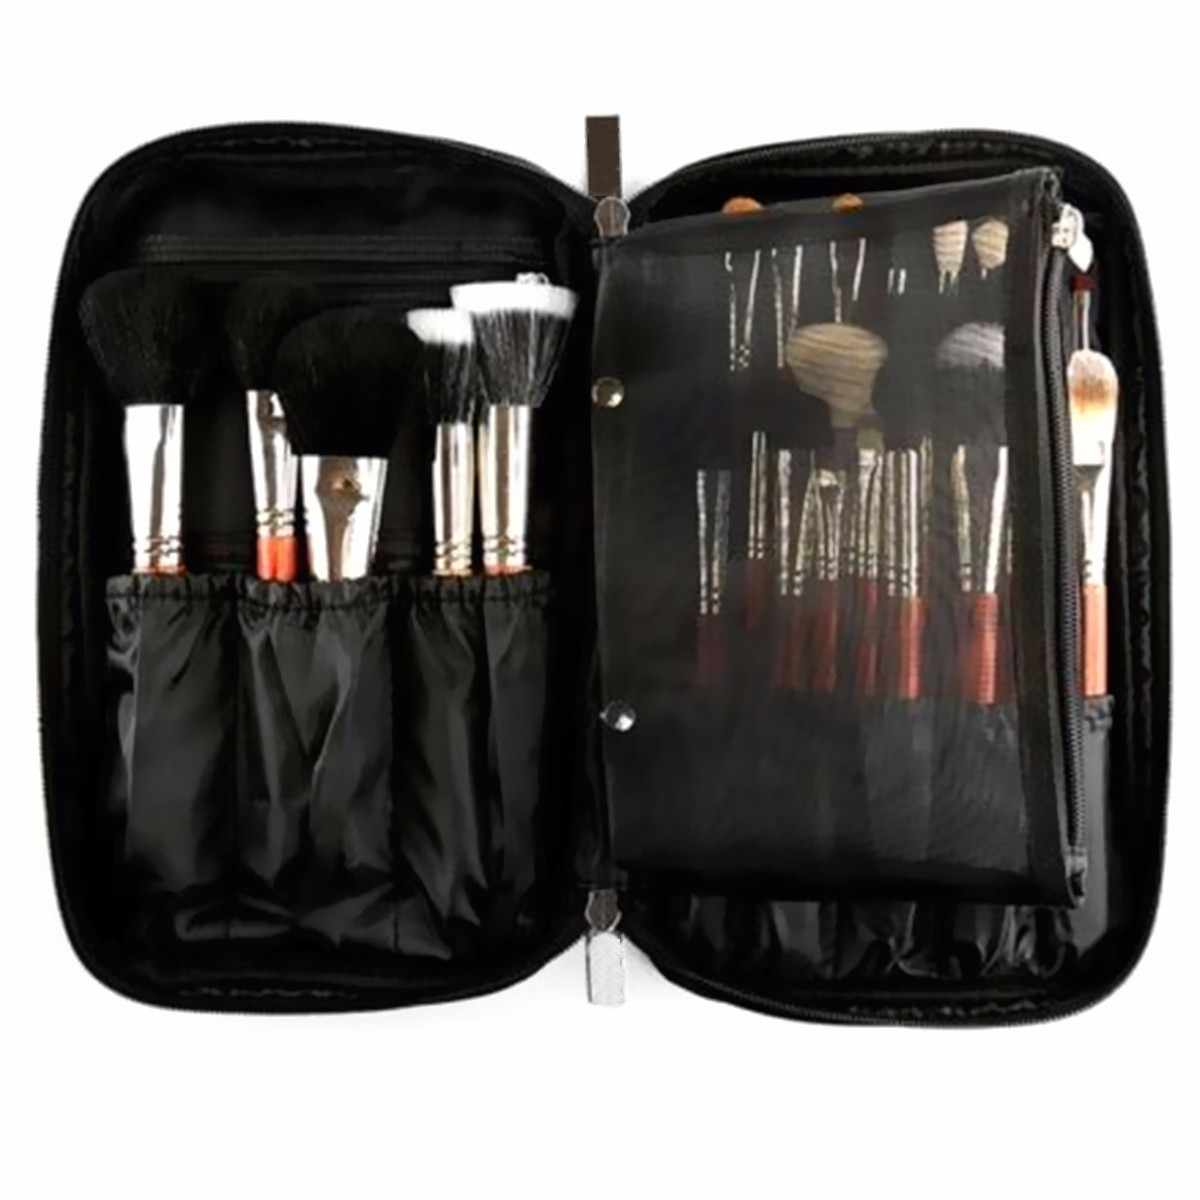 1PCS Make Up Brush Organizer Travel Toiletry Handbag Cosmetic Storage Case  Beauty Tool Pouch Bag Women 94e1b20d978c7